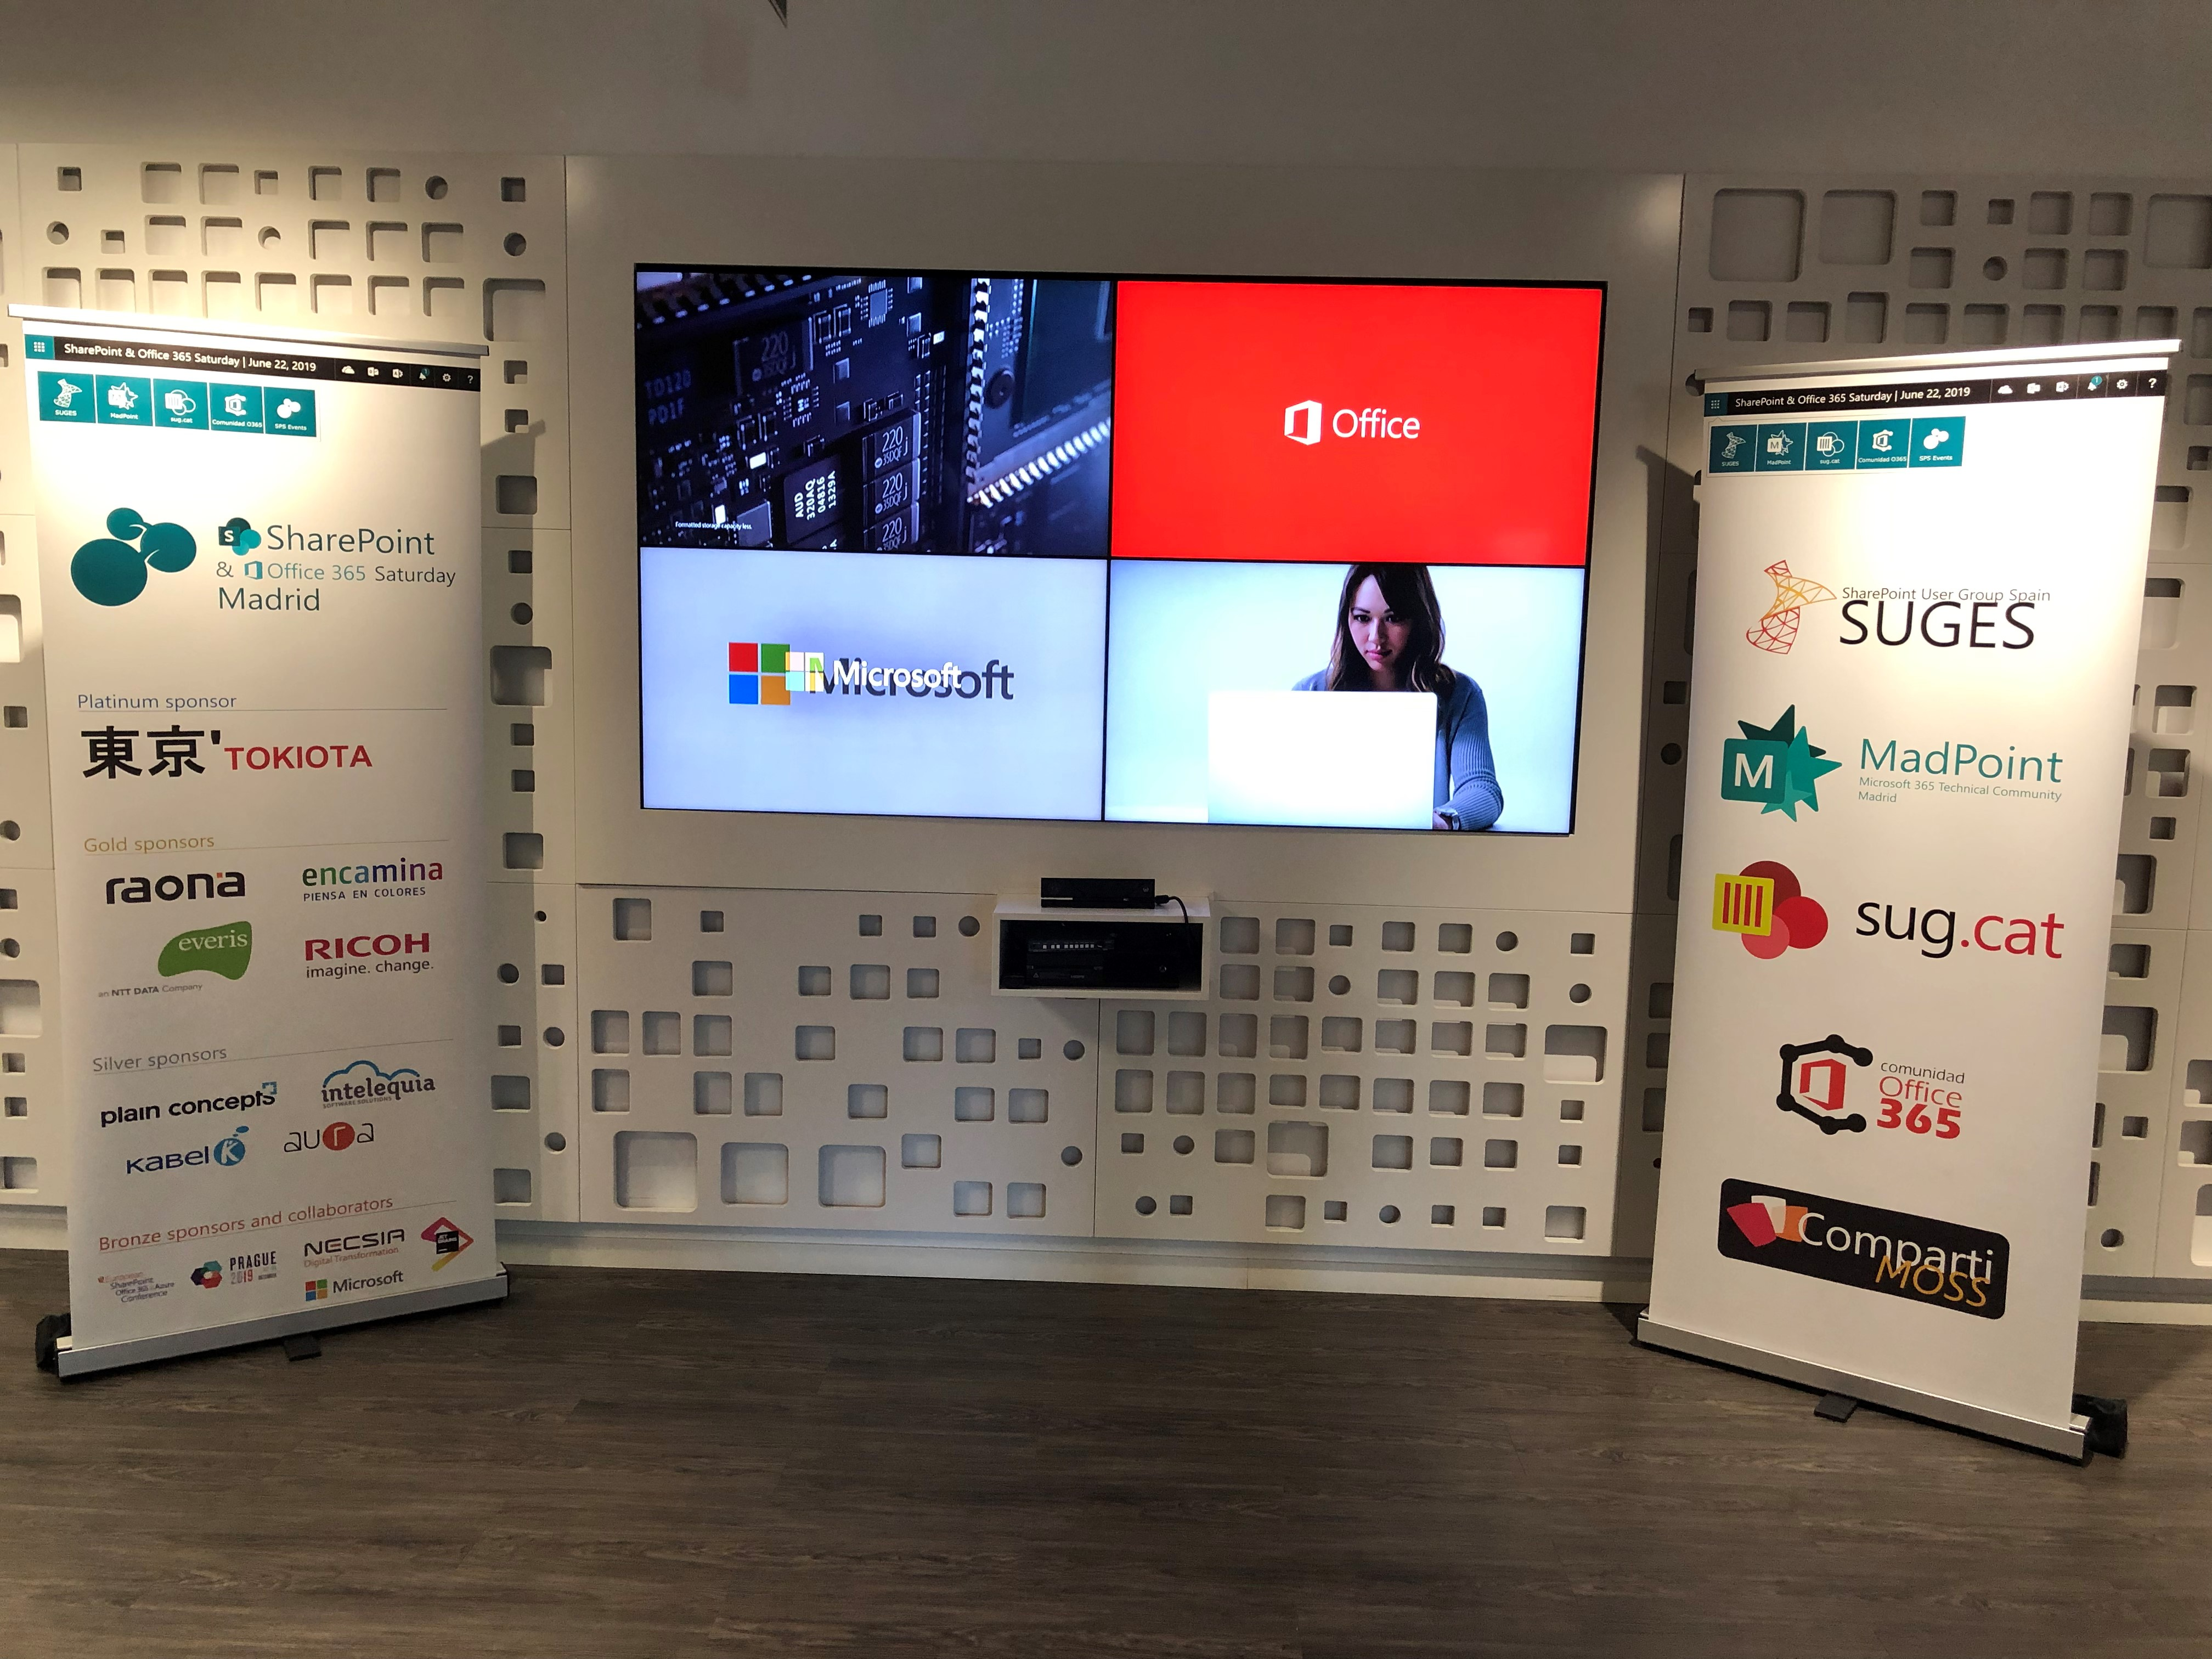 Presentaciones del equipo de coordinación de MadPoint en SharePoint and Office 365 Saturday Madrid 2019